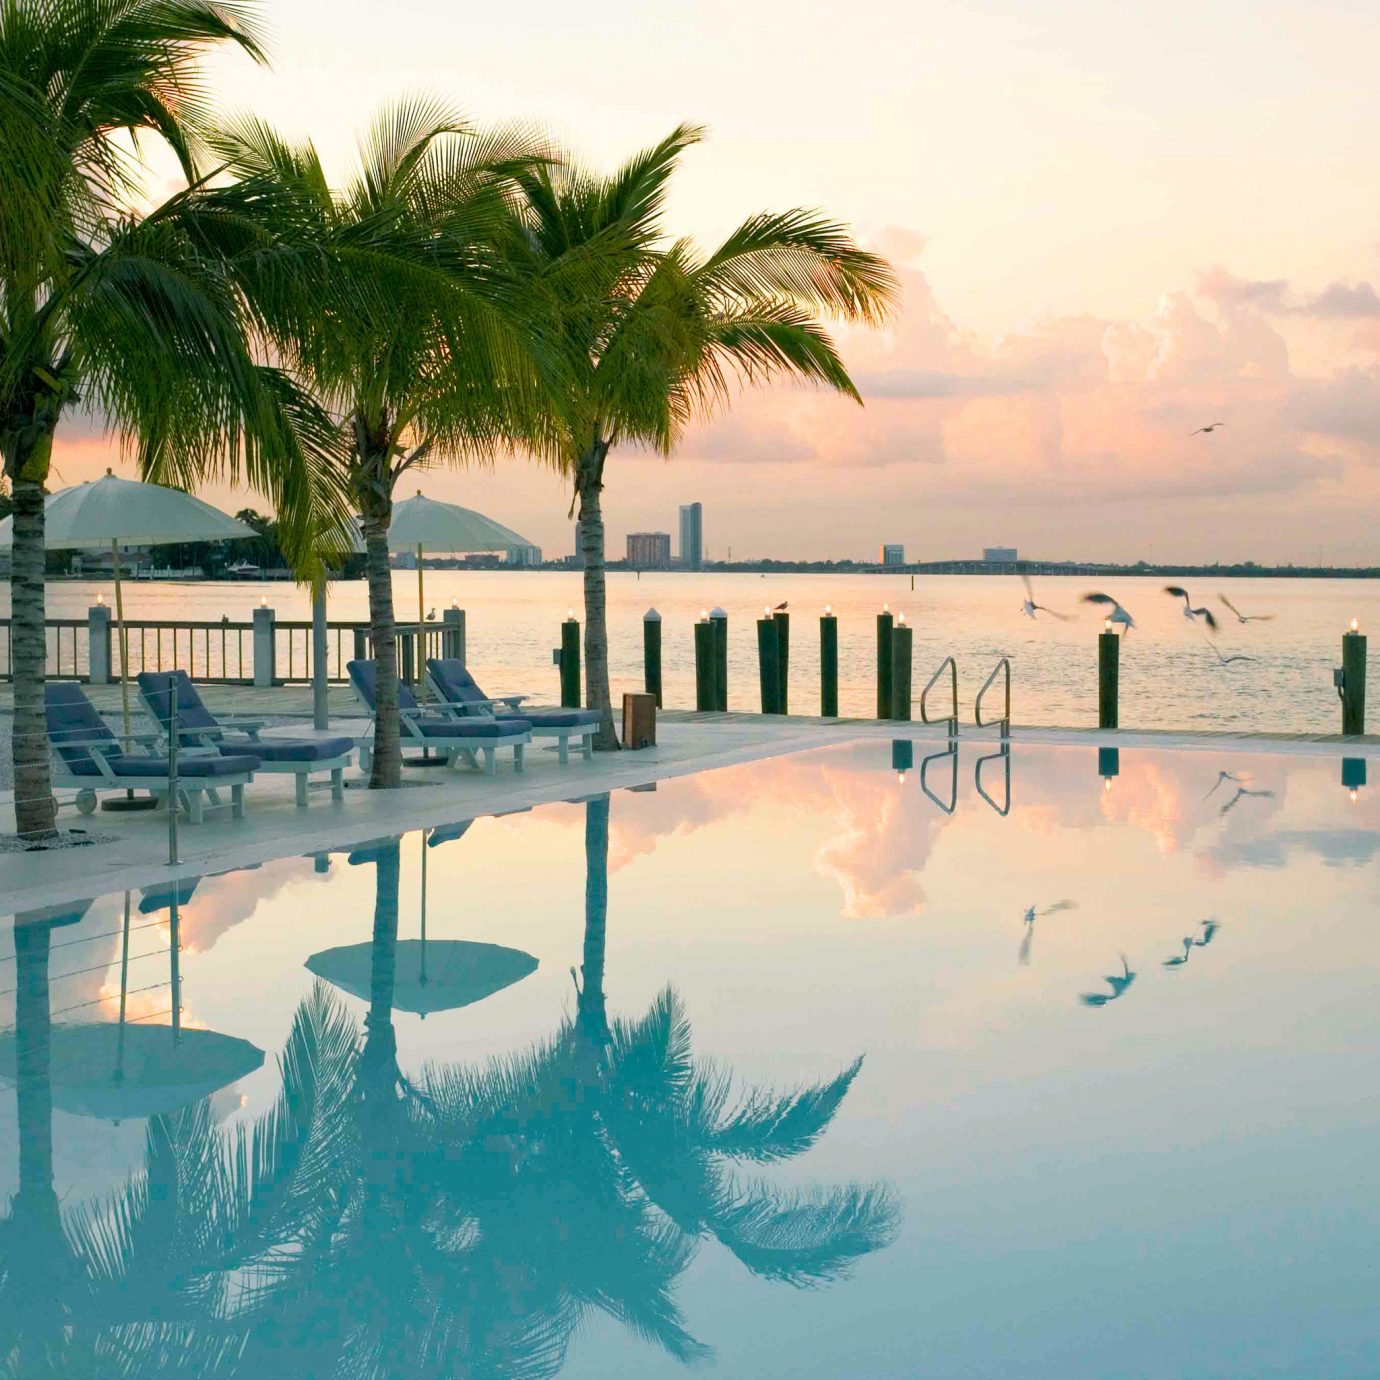 Adult-only Pool Romance Scenic views Trip Ideas Wellness outdoor tree water palm Ocean Beach Sea plant vacation reflection swimming pool morning arecales Resort Sun Nature caribbean Sunset Lagoon bay wave shore lined several sandy day line